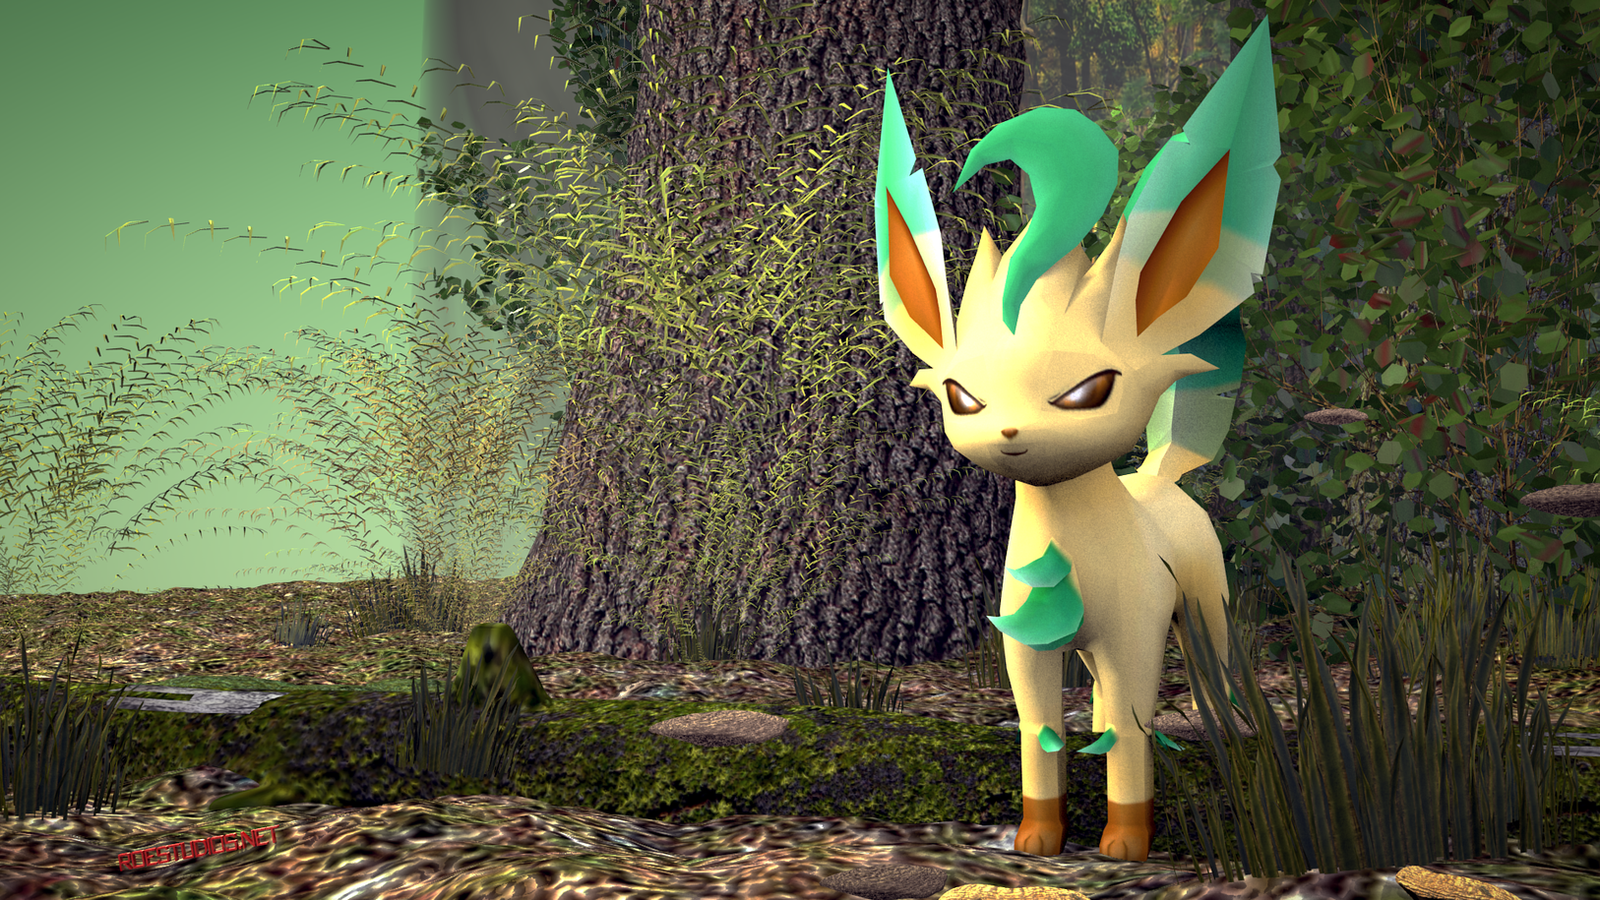 Leafeon in the forest 3d model by themoderator on deviantart for Deviantart 3d models